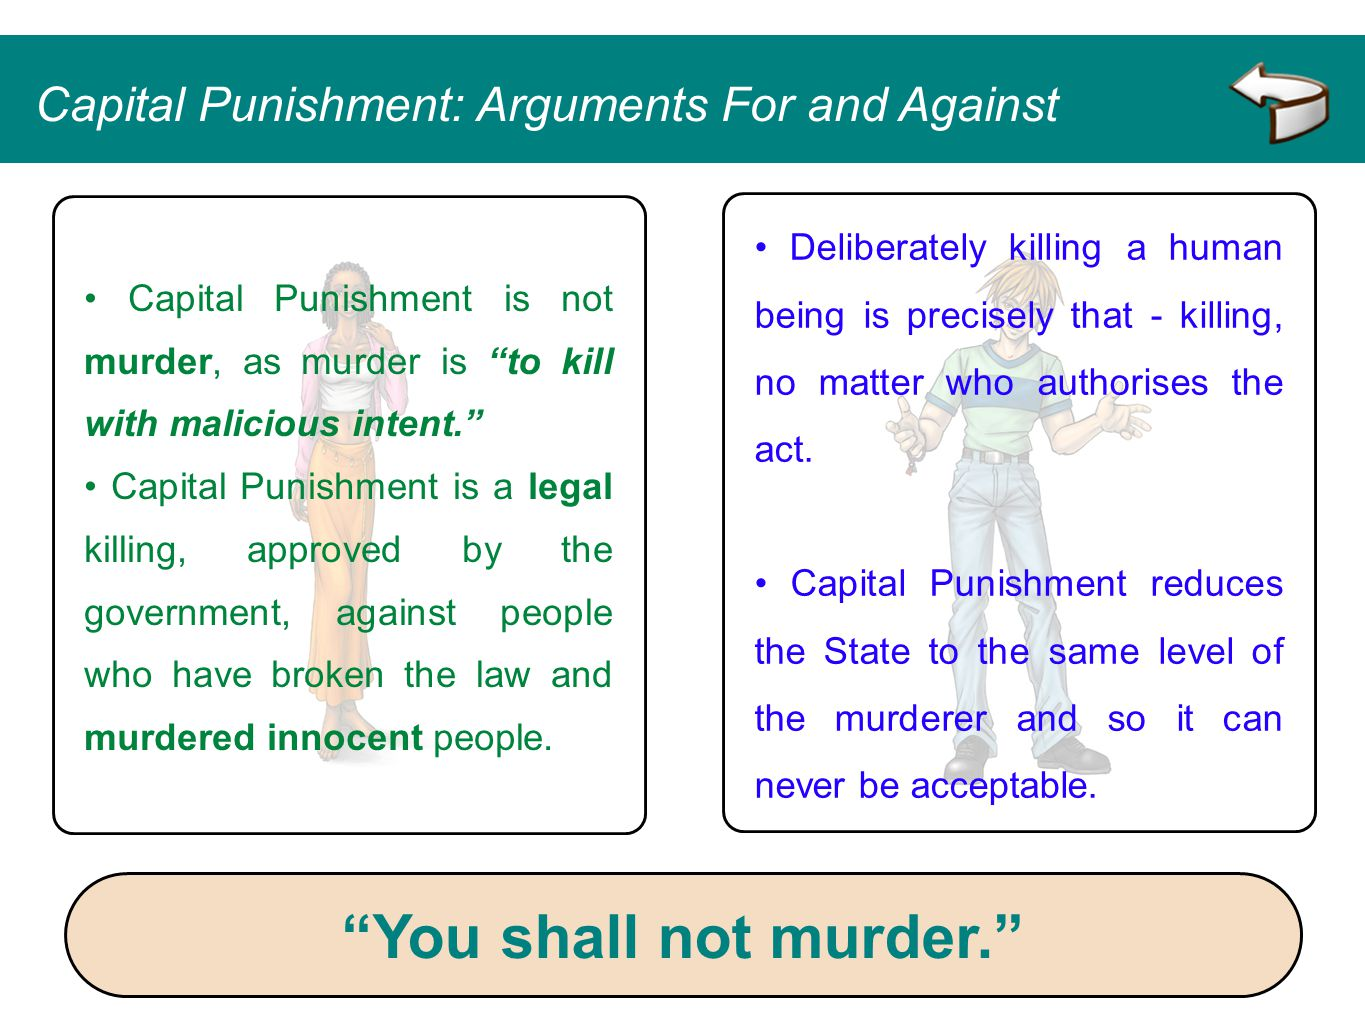 capital punishment should not be legal